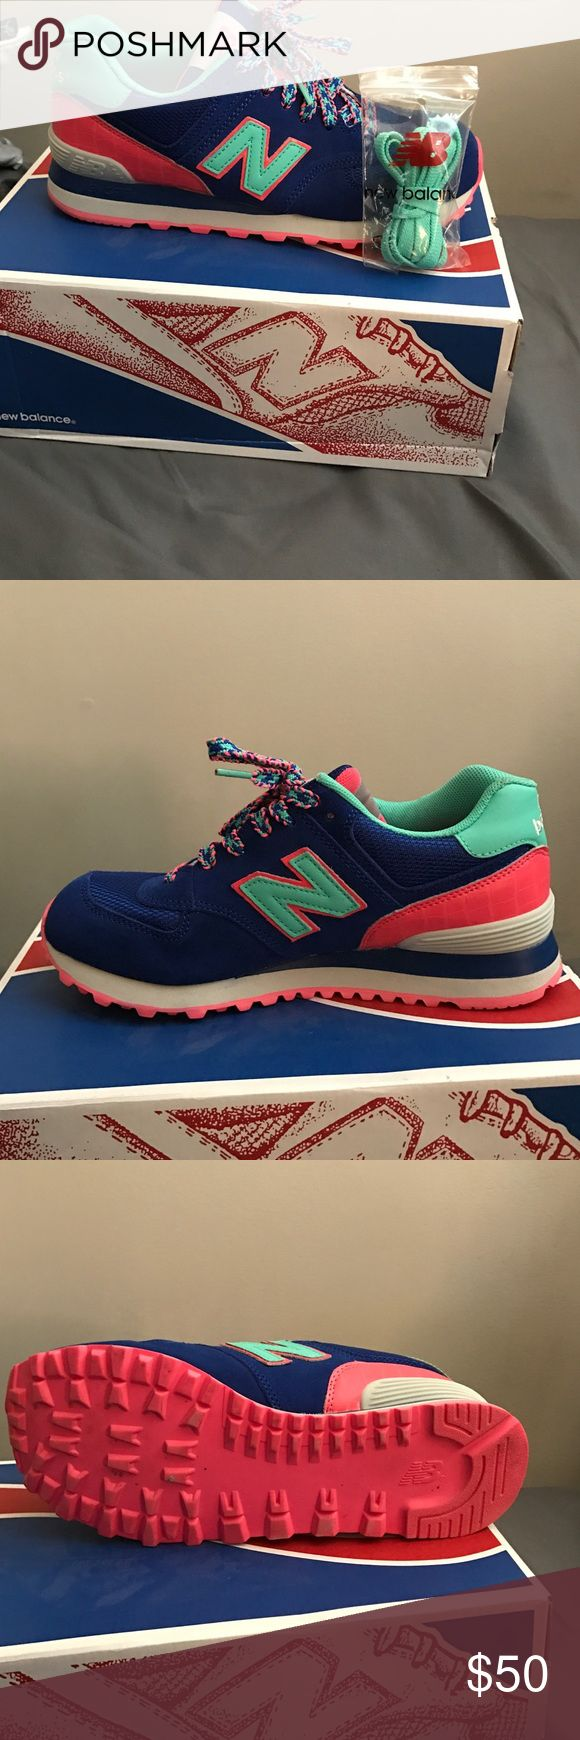 New balance classic traditional women's shoe New balance classic traditional women's shoe in multi color, comes with extra pair of shoestrings. New Balance Shoes Sneakers